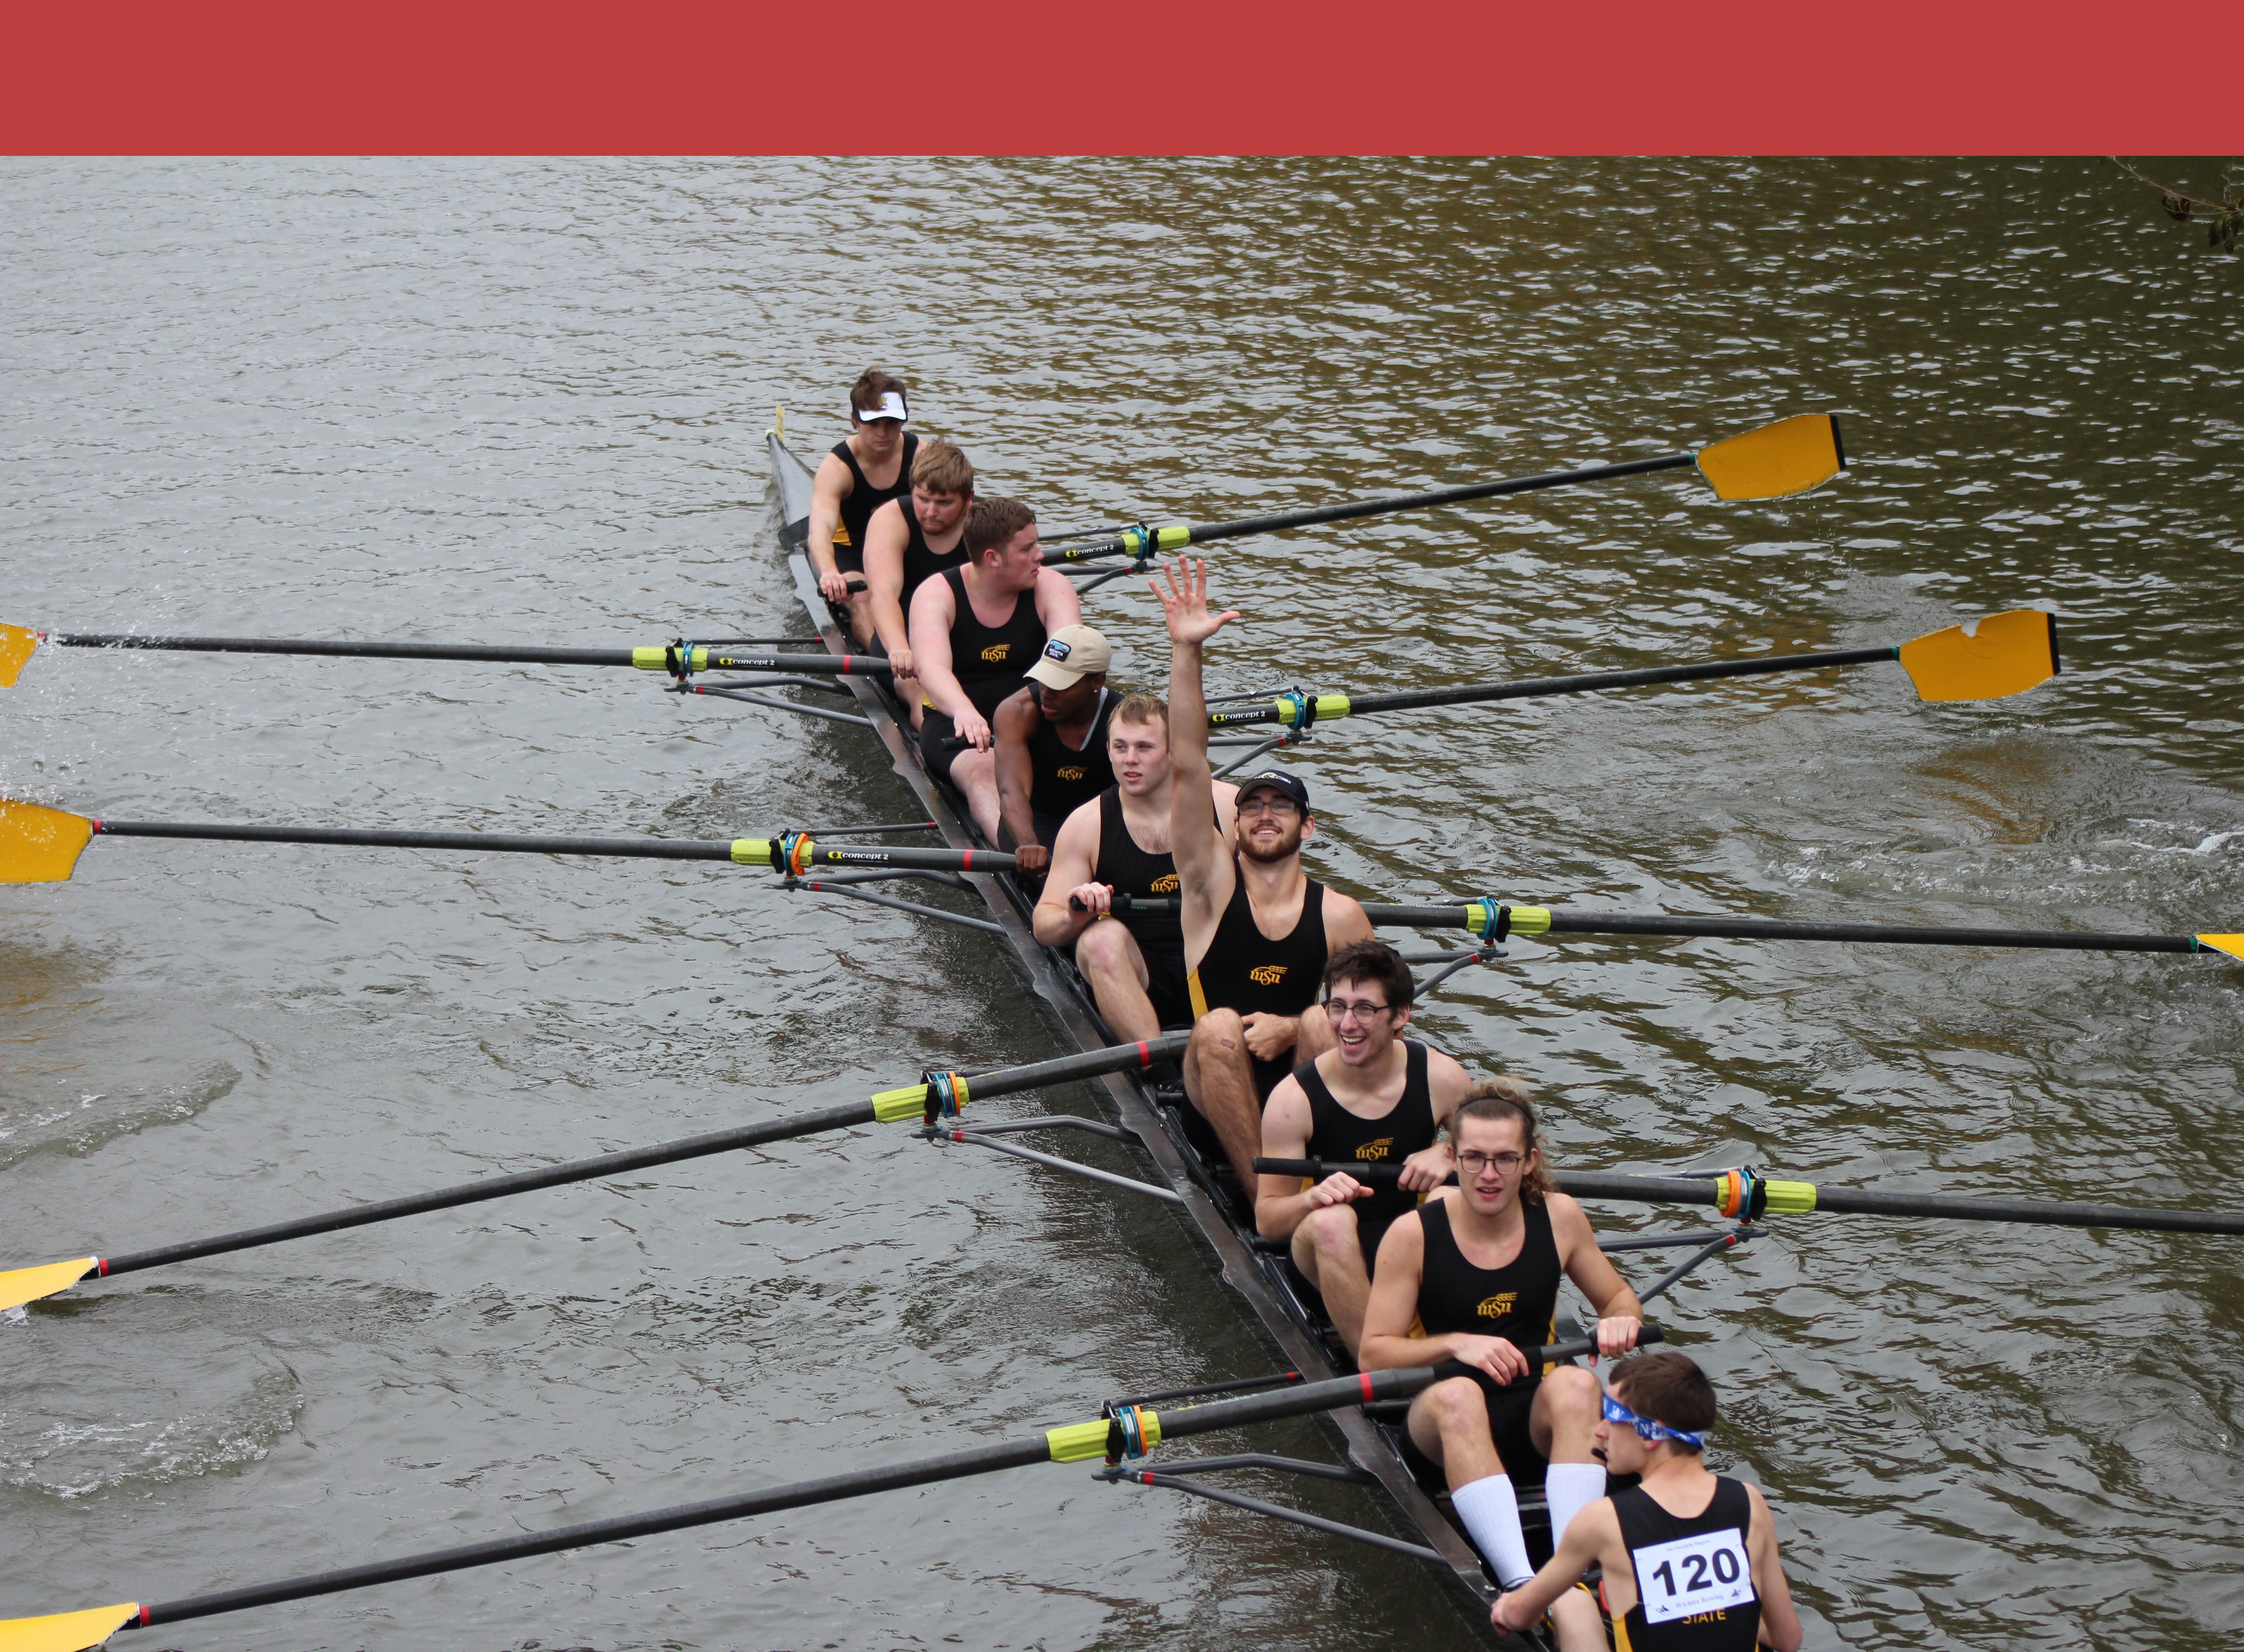 Men's novice 8. One of the men in the middle of the boat has his hand upraised and is smiling at the camera. All the rest are focused on rowing like good rowers.